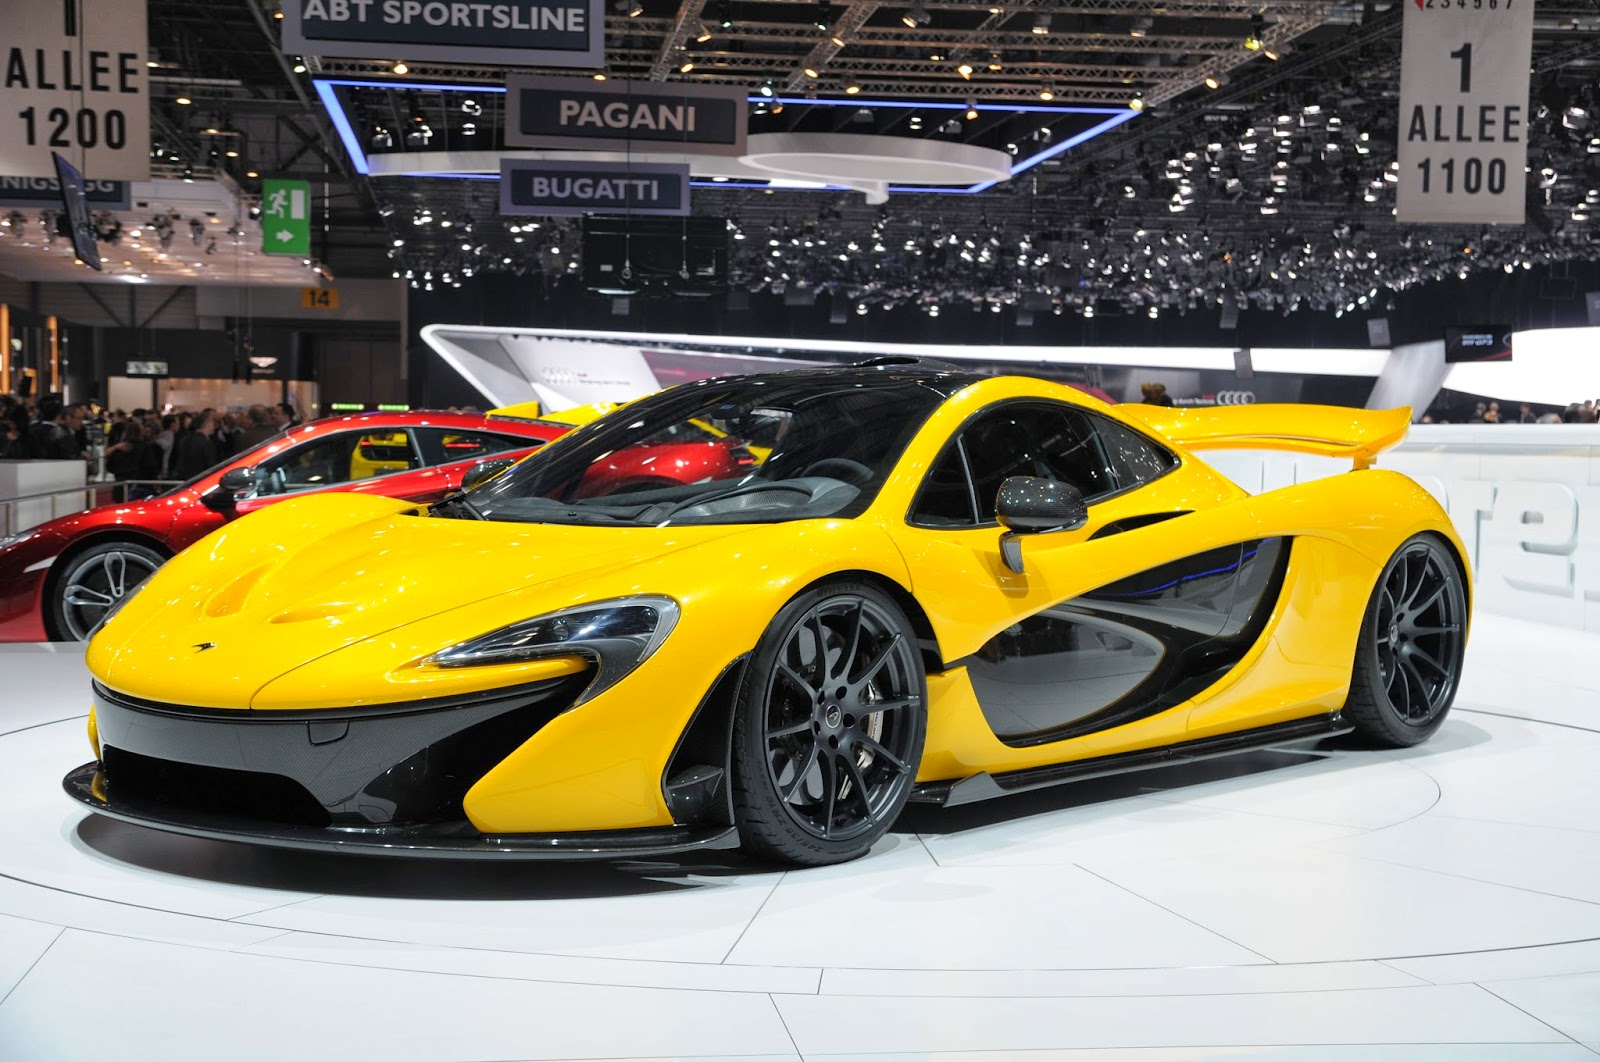 Woh Now Thats Some Cool Car Mclaren P Pinterest Mclaren P - Cool car companies